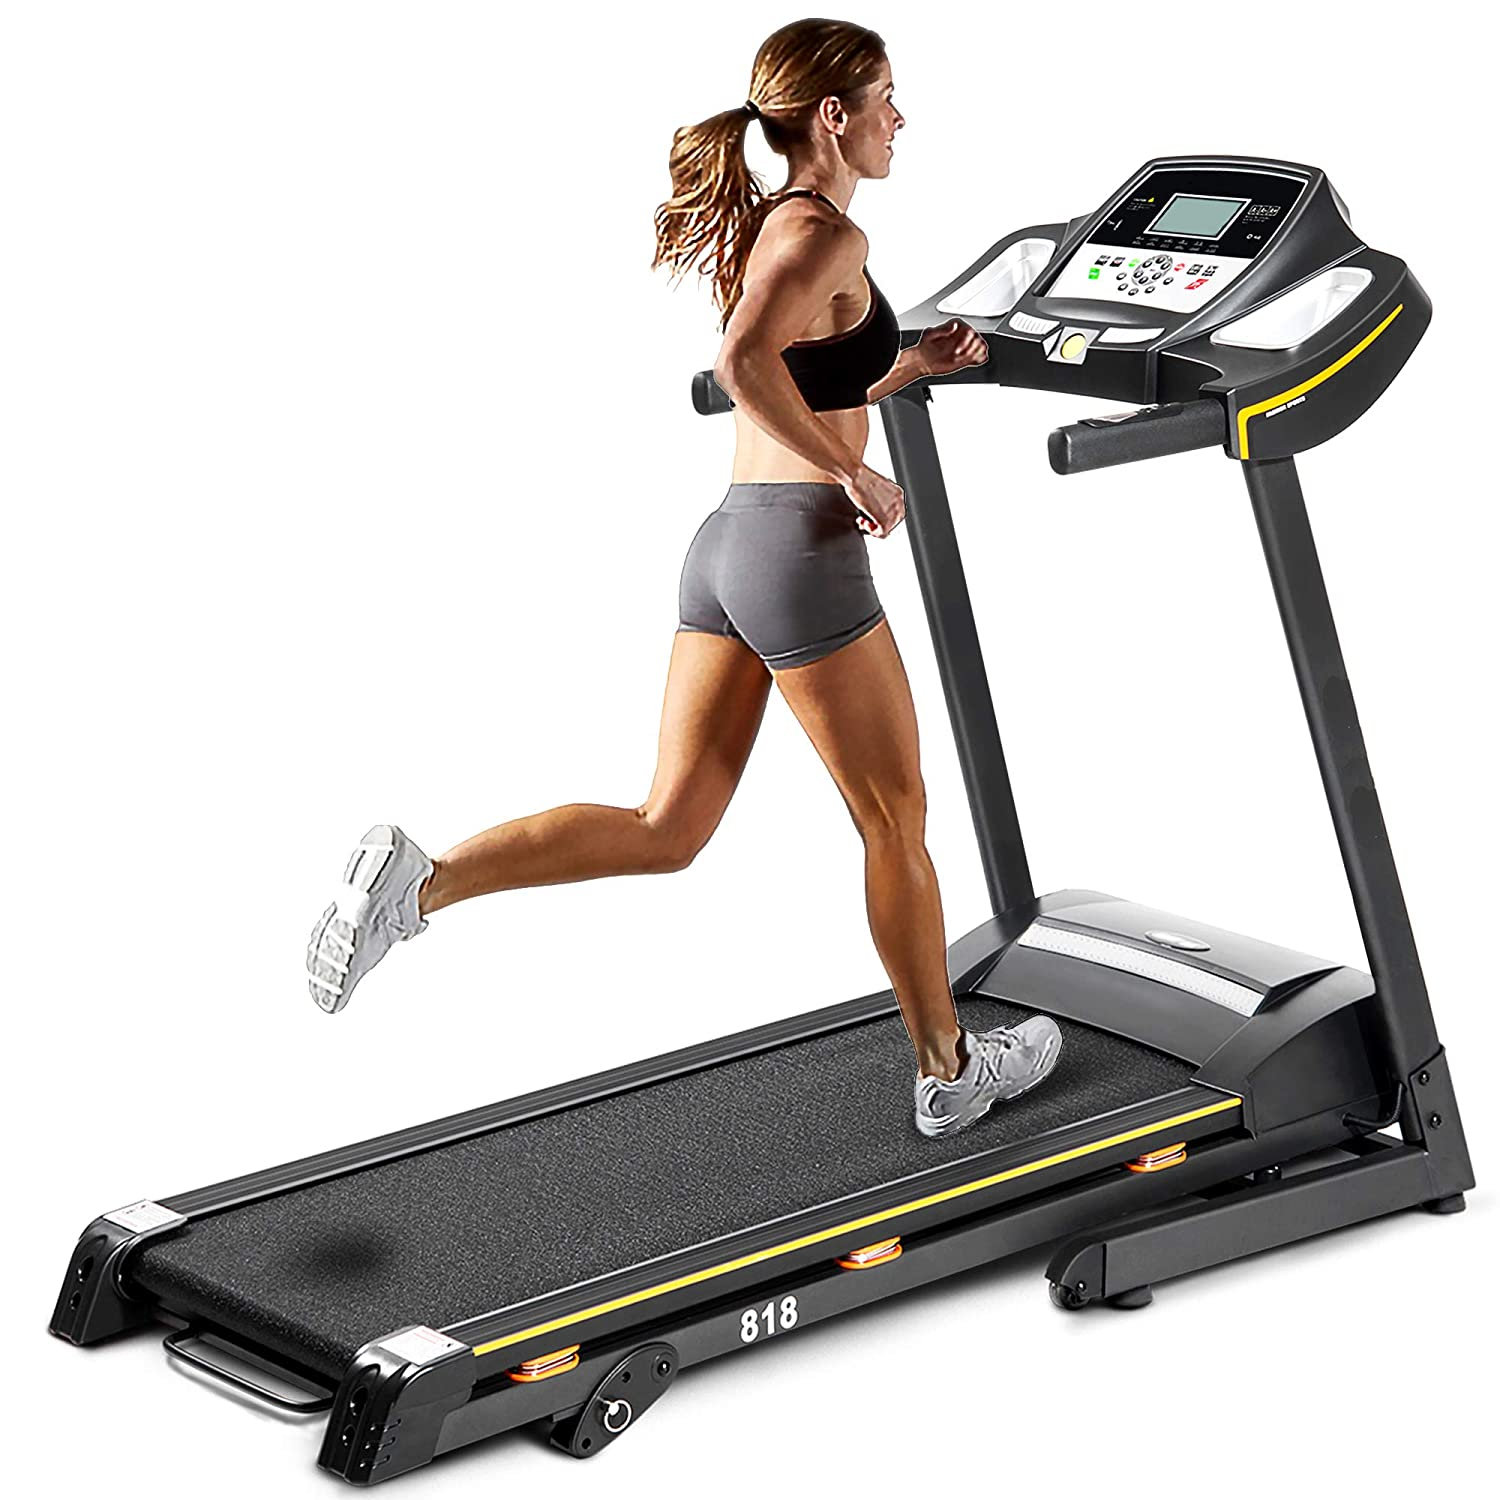 Julyfox Electric Running Treadmill with Incline, 2.25 HP Motorized Folding Treadmill Running Walking Jogging Home Exercise Machine W Heart Rate Monitor Cup Holder Safety Key Quiet Soft Drop